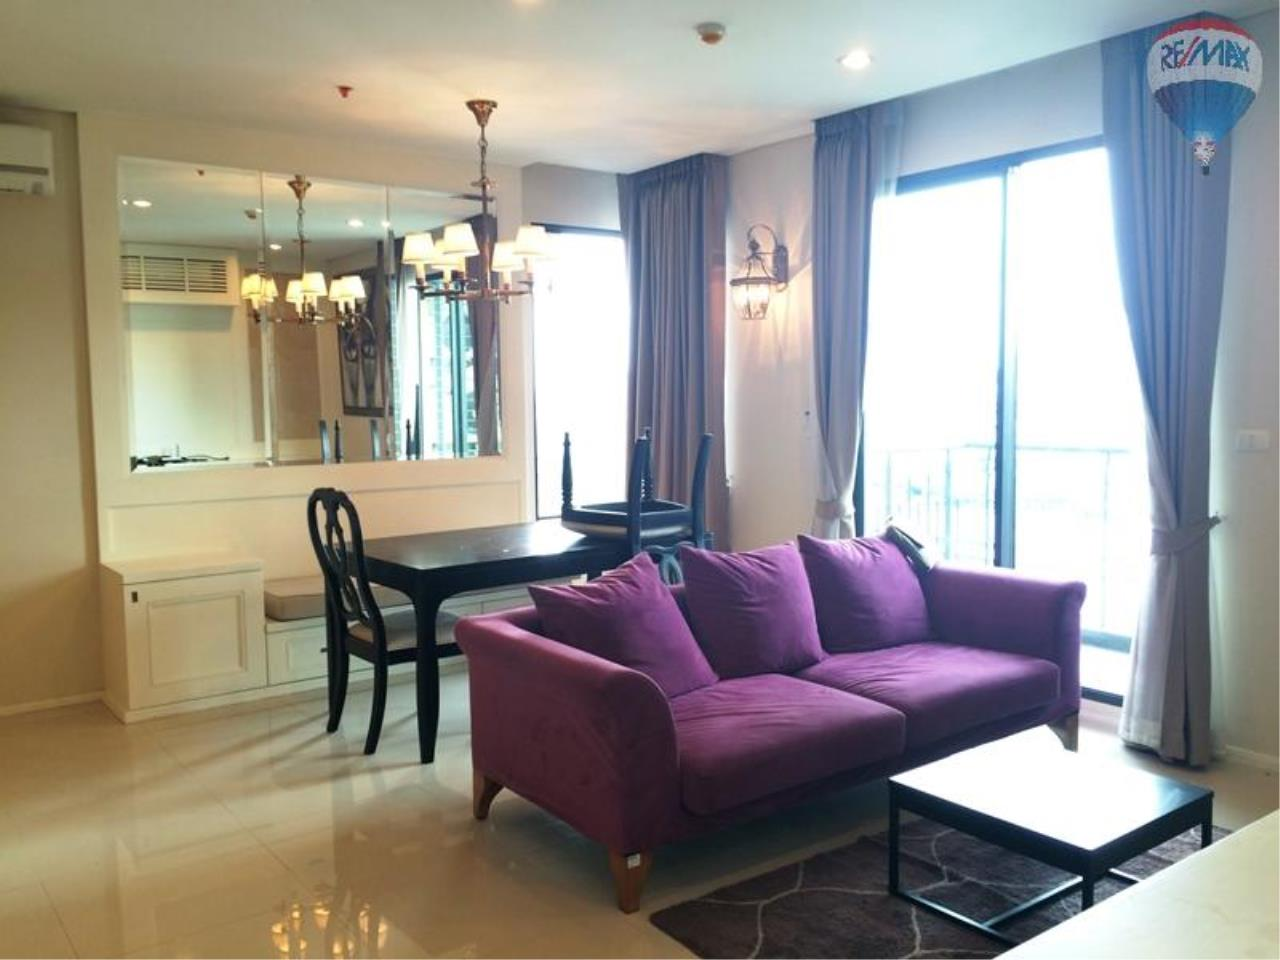 RE/MAX Properties Agency's Condo for RENT 2B/2B on Asoke, 86 sq.m., good view close to Airport link 1